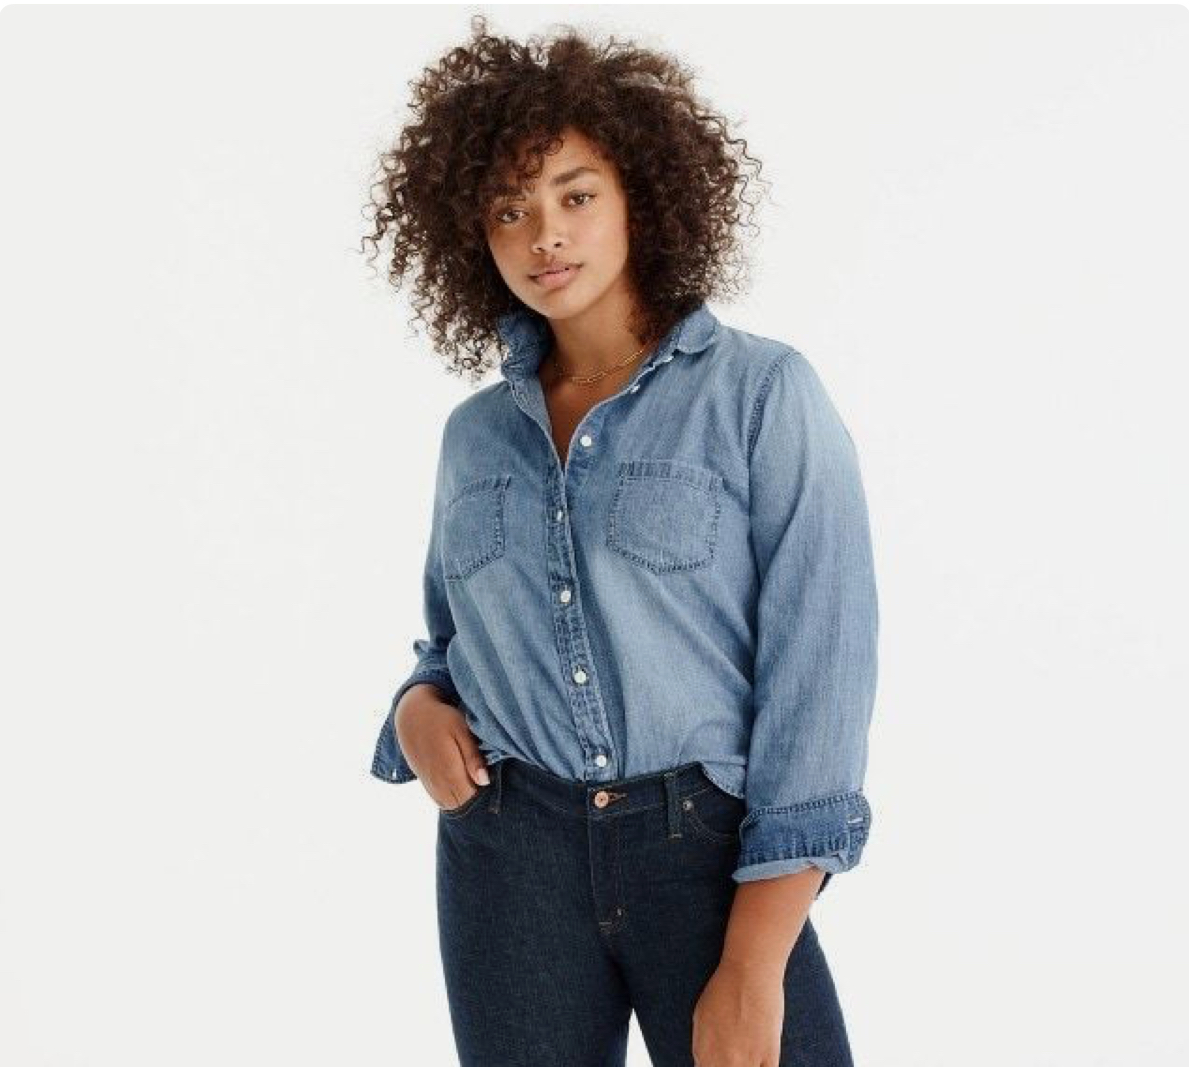 A woman is wearing a large hat blue chambray button up tucked into a dark pair of jeans